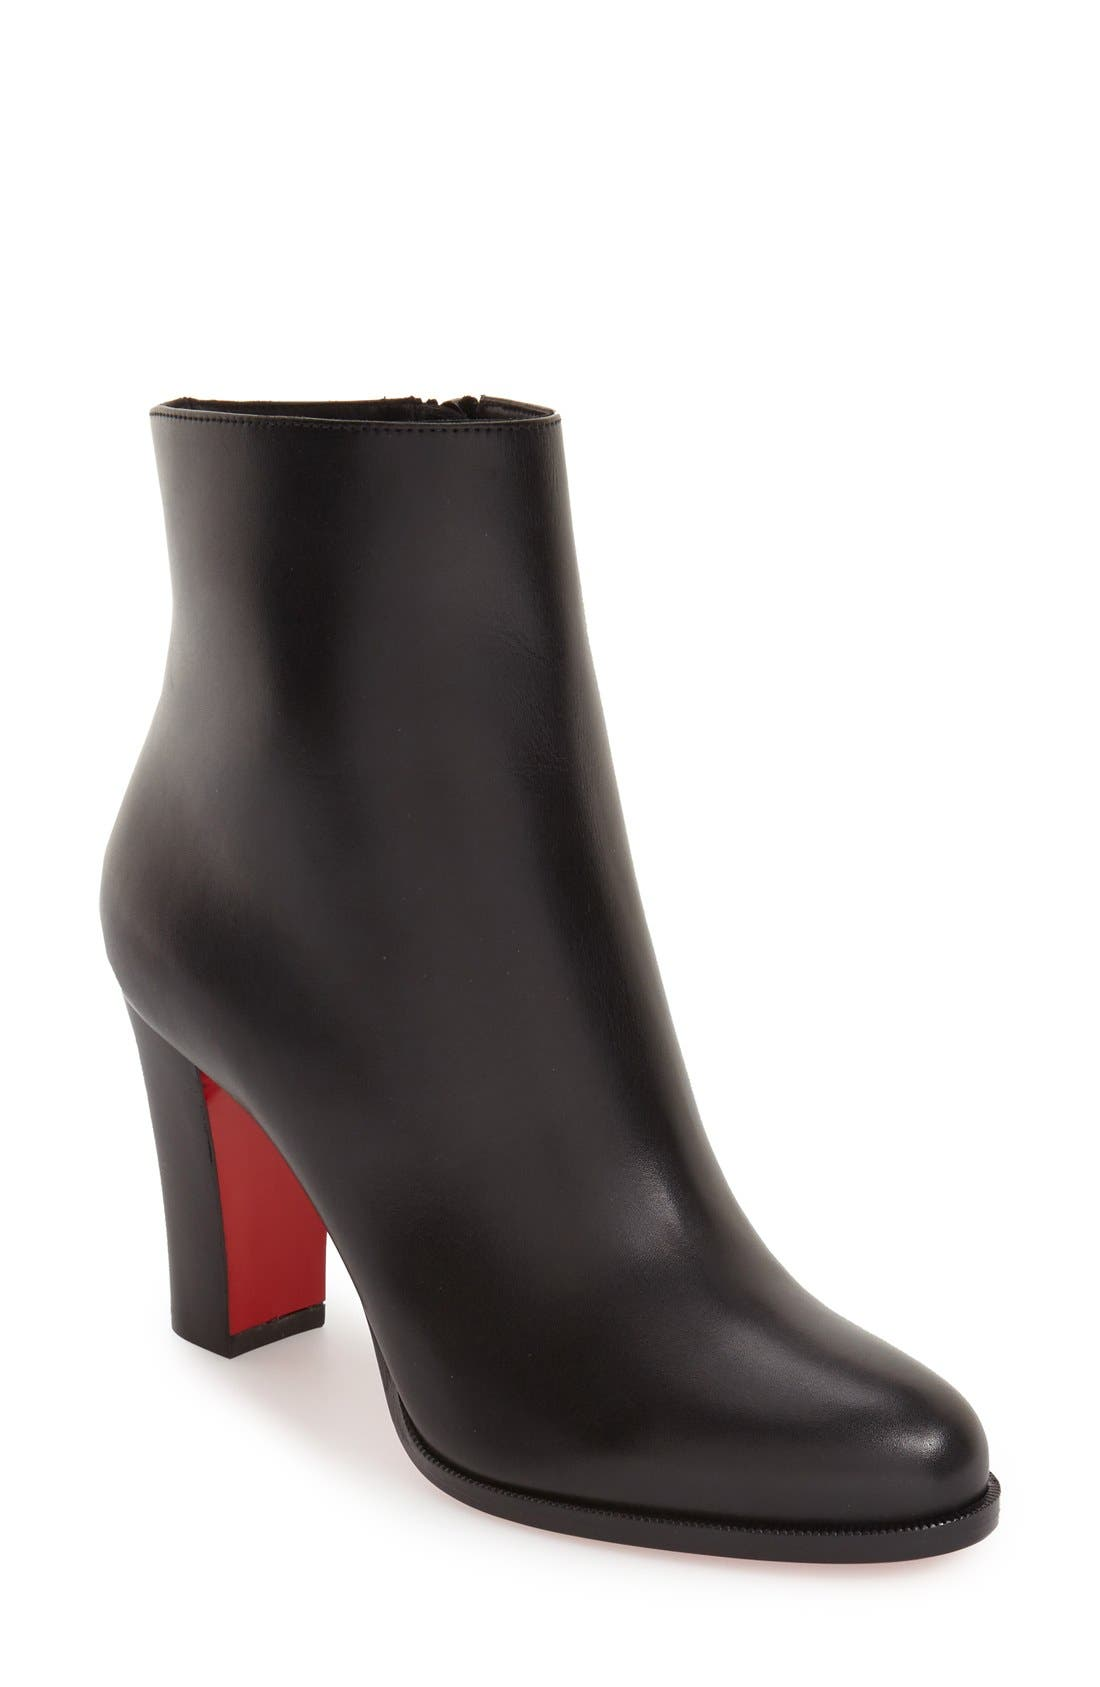 Alternate Image 1 Selected - Christian Louboutin Adox Block Heel Bootie